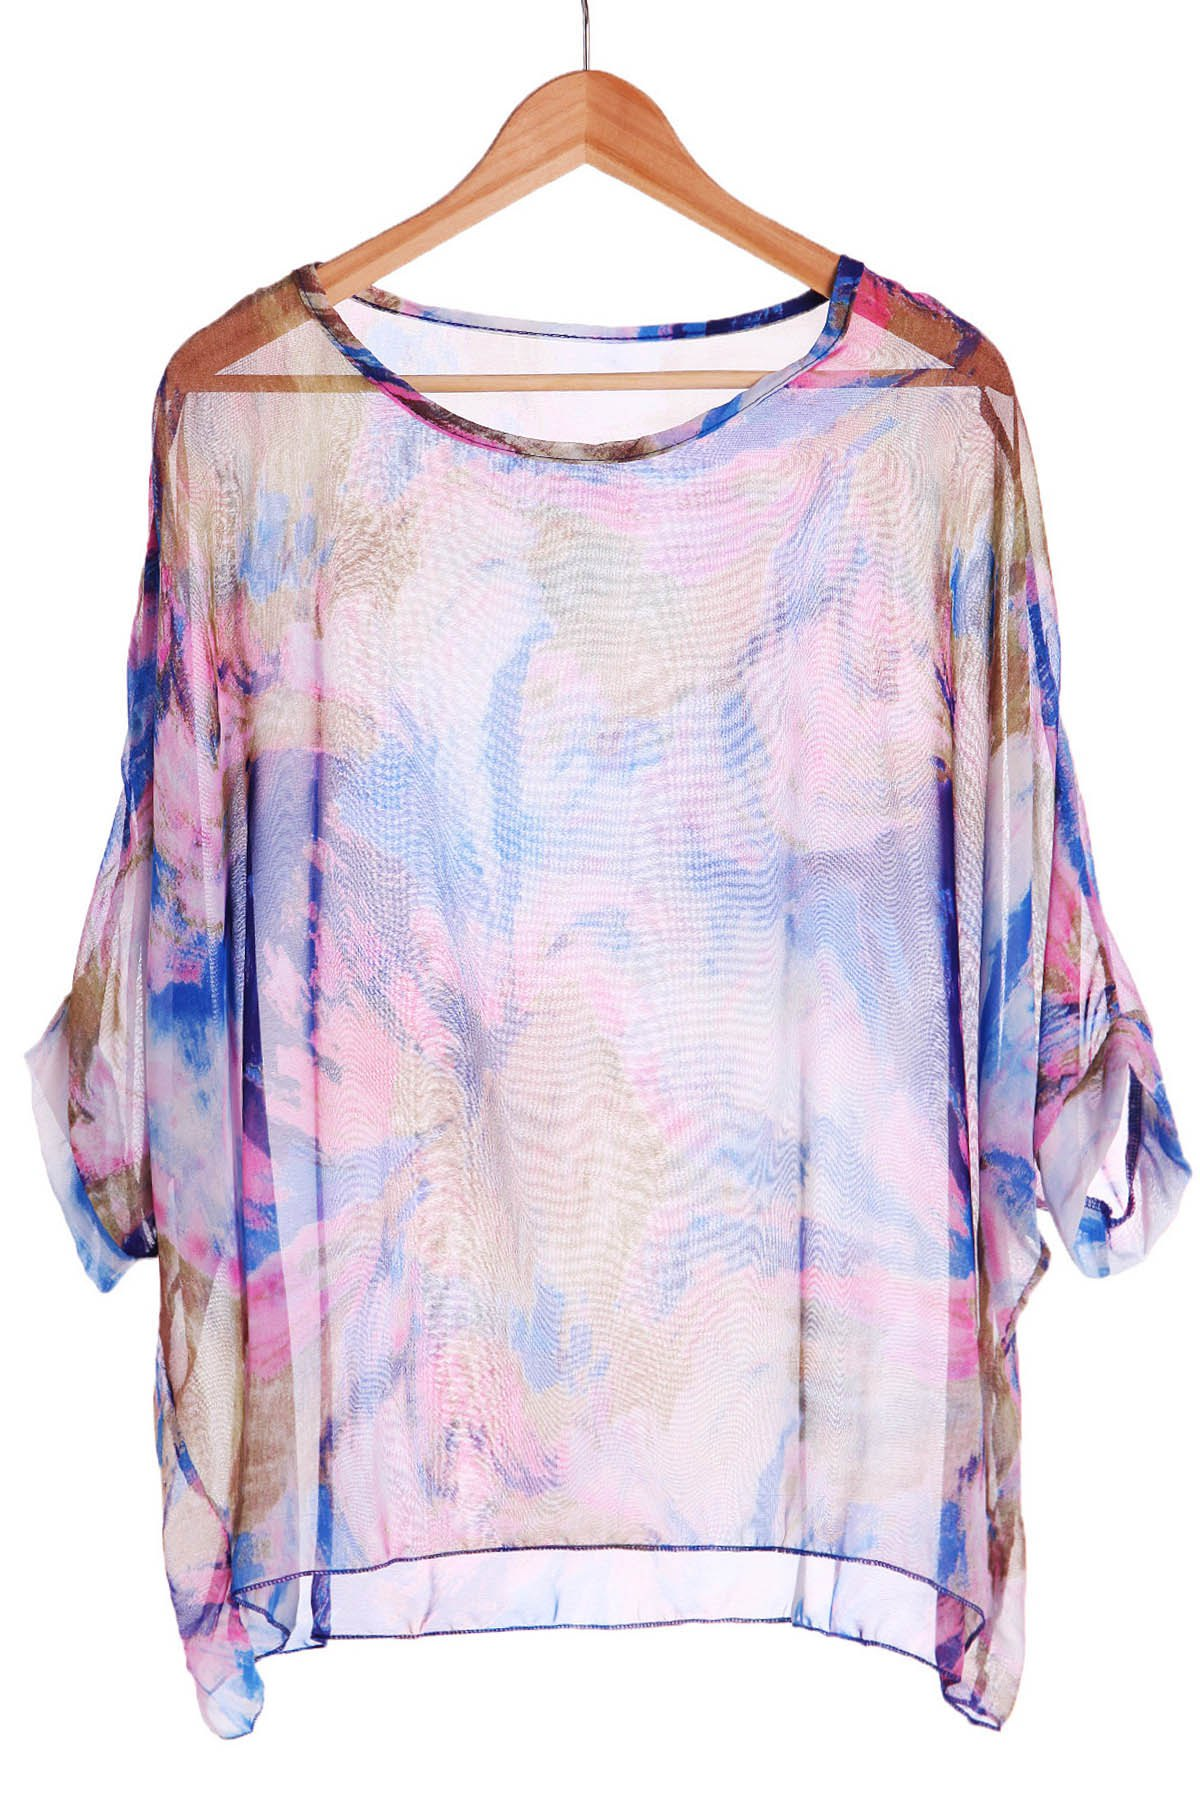 Stylish Scoop Neck 3/4 Sleeve Plus Size Printed Women's T-Shirt - COLORMIX ONE SIZE(FIT SIZE XS TO M)